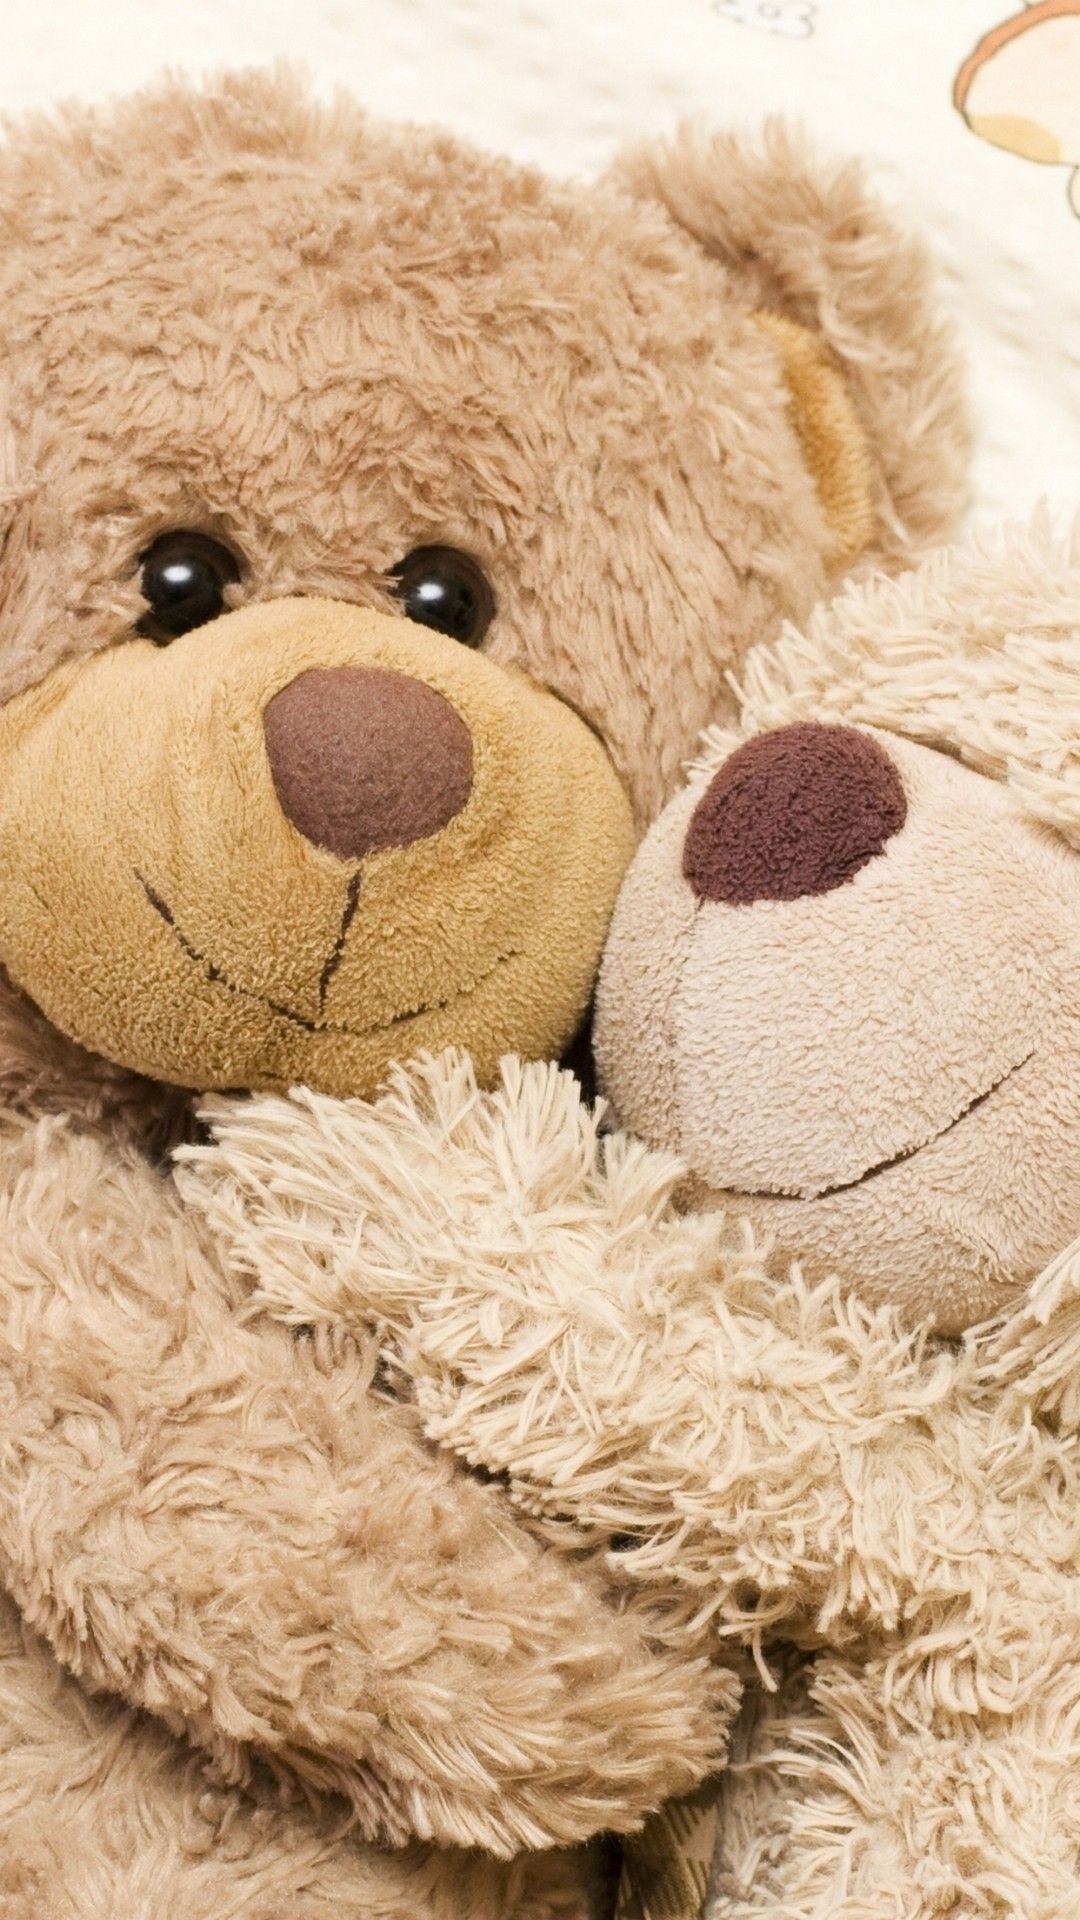 Cute Teddy Bear Iphone X Wallpaper Teddy Bear Wallpaper Bear Wallpaper Teddy Day